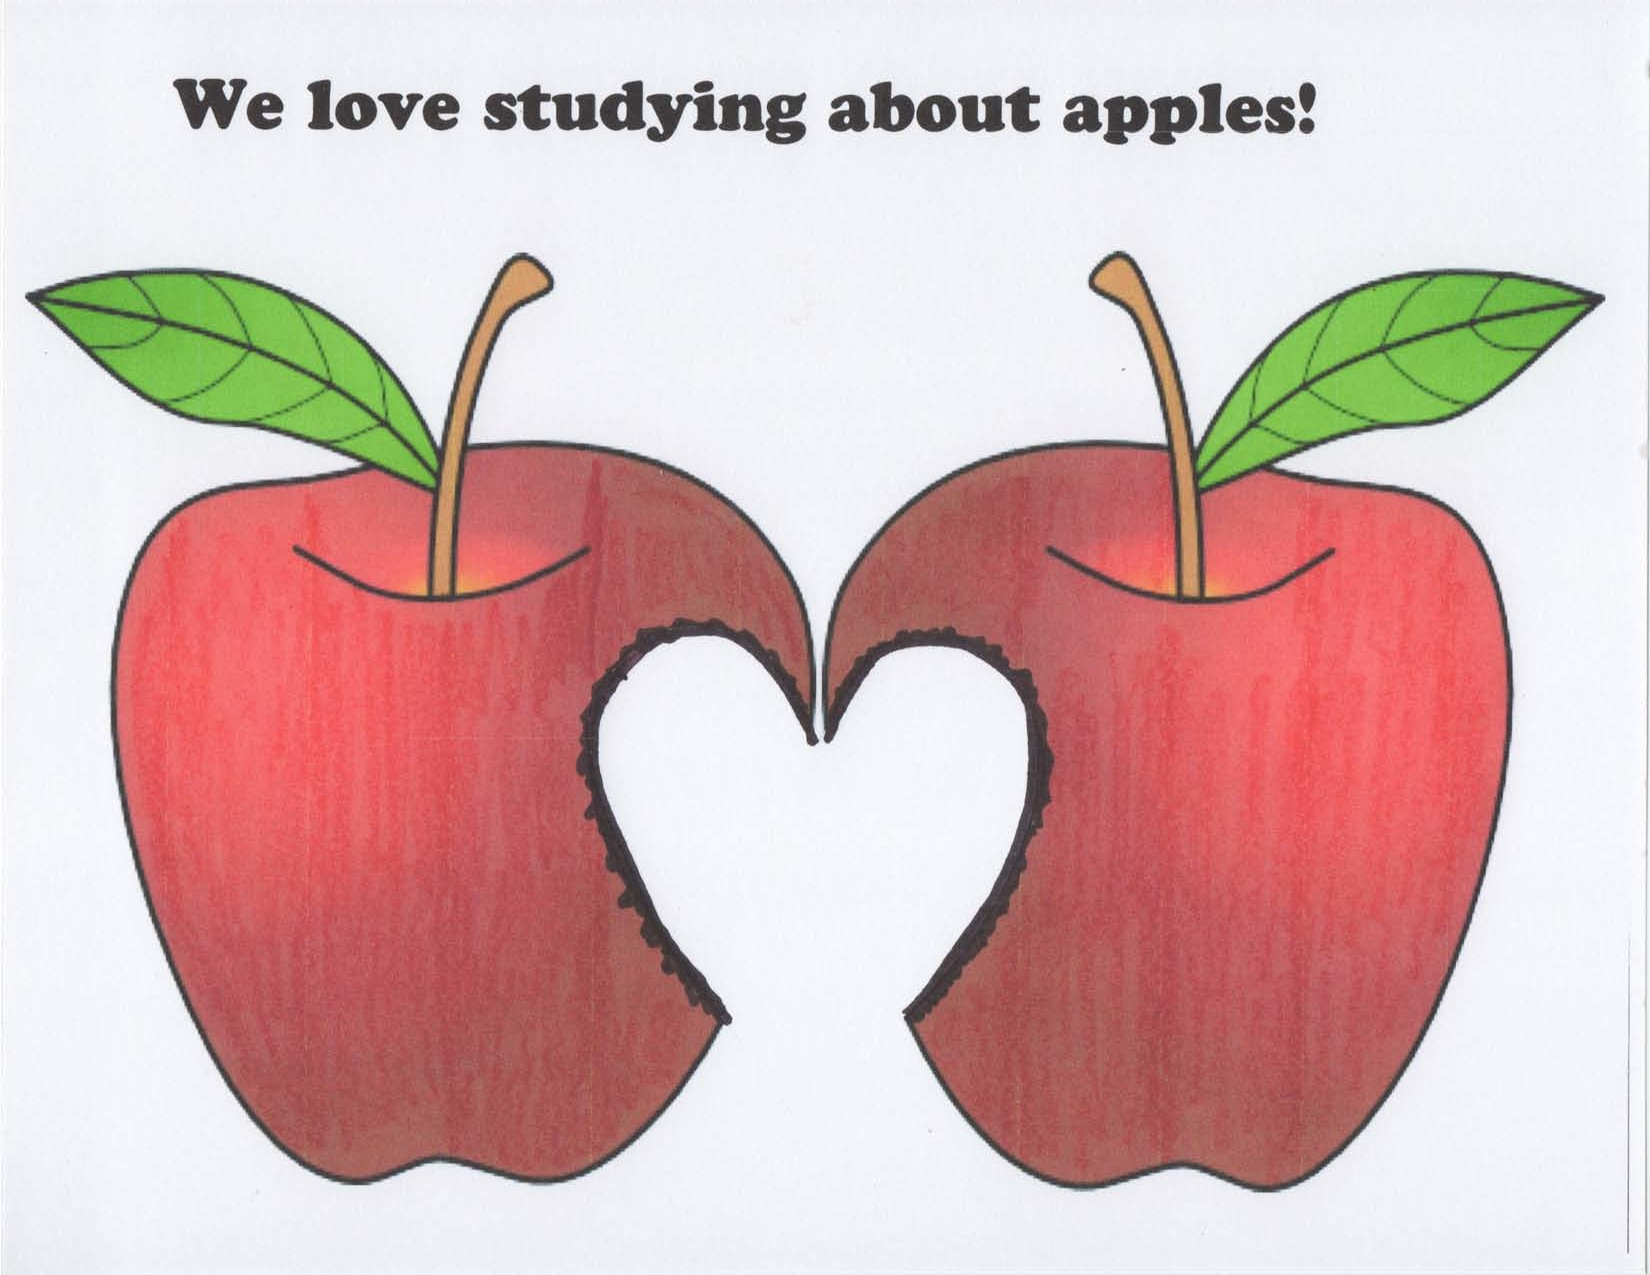 lcov ove apples poster